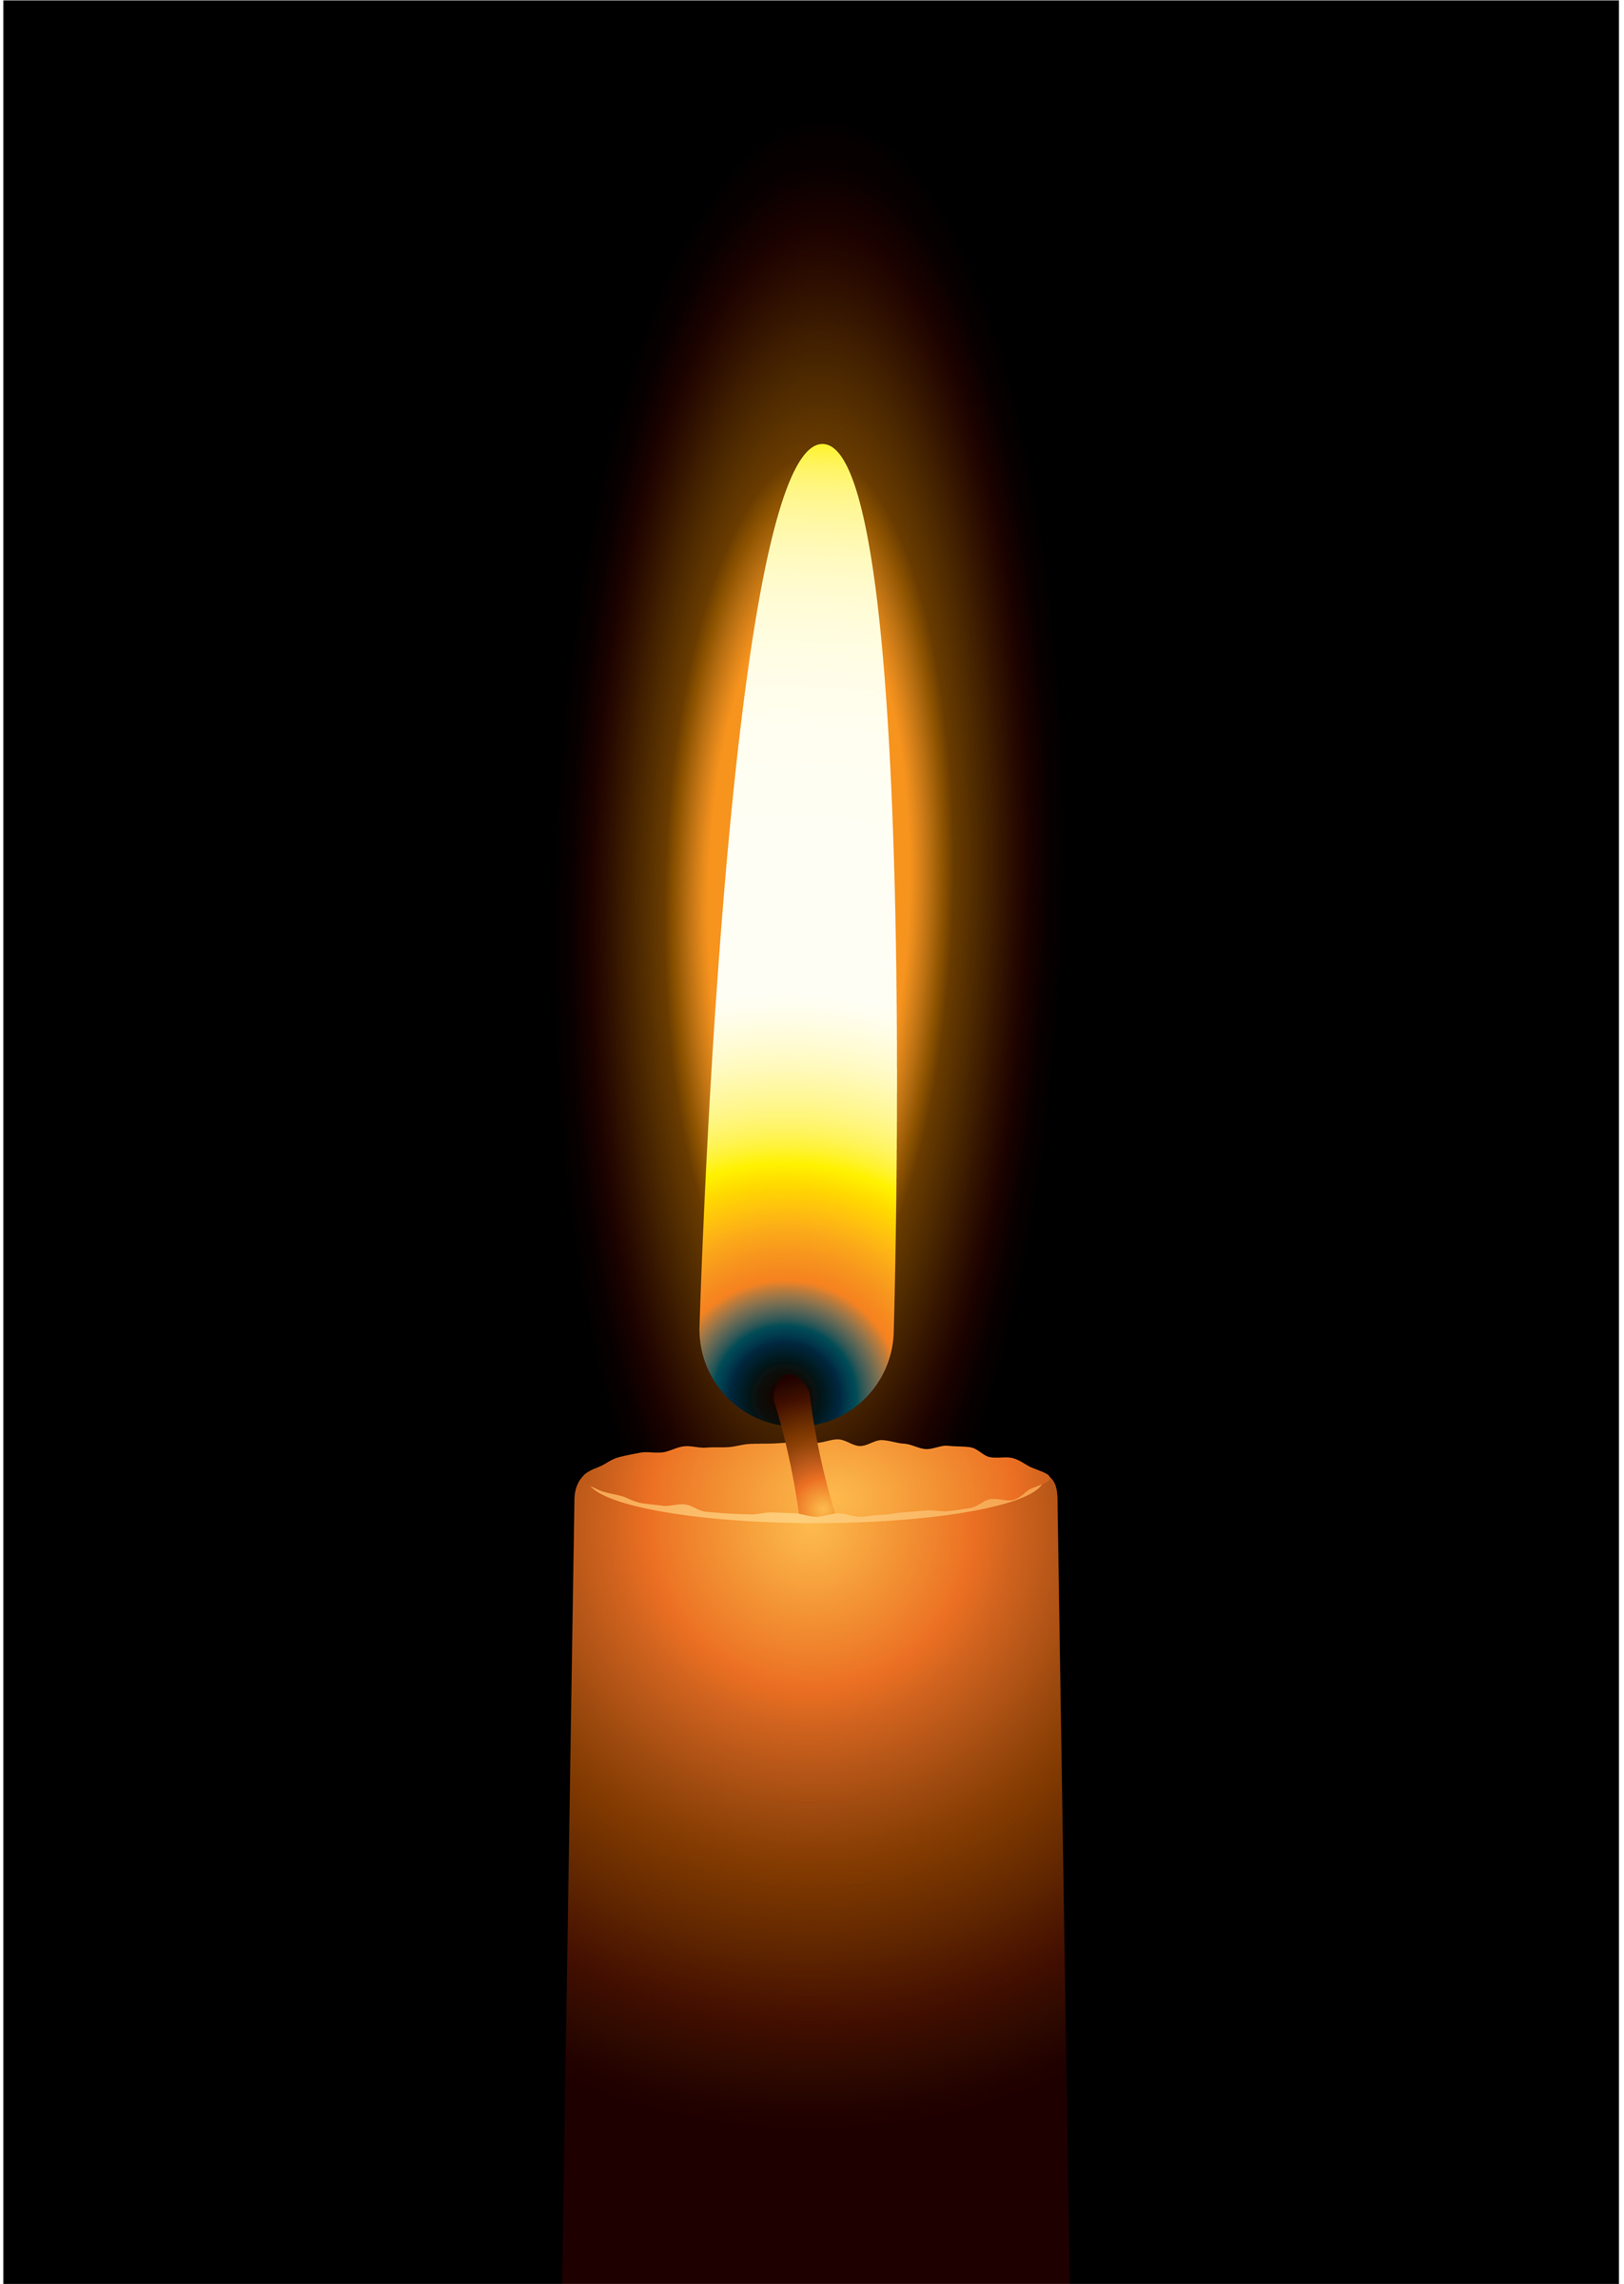 Animated Candle Flame Gif Clipart - Candle, Transparent background PNG HD thumbnail